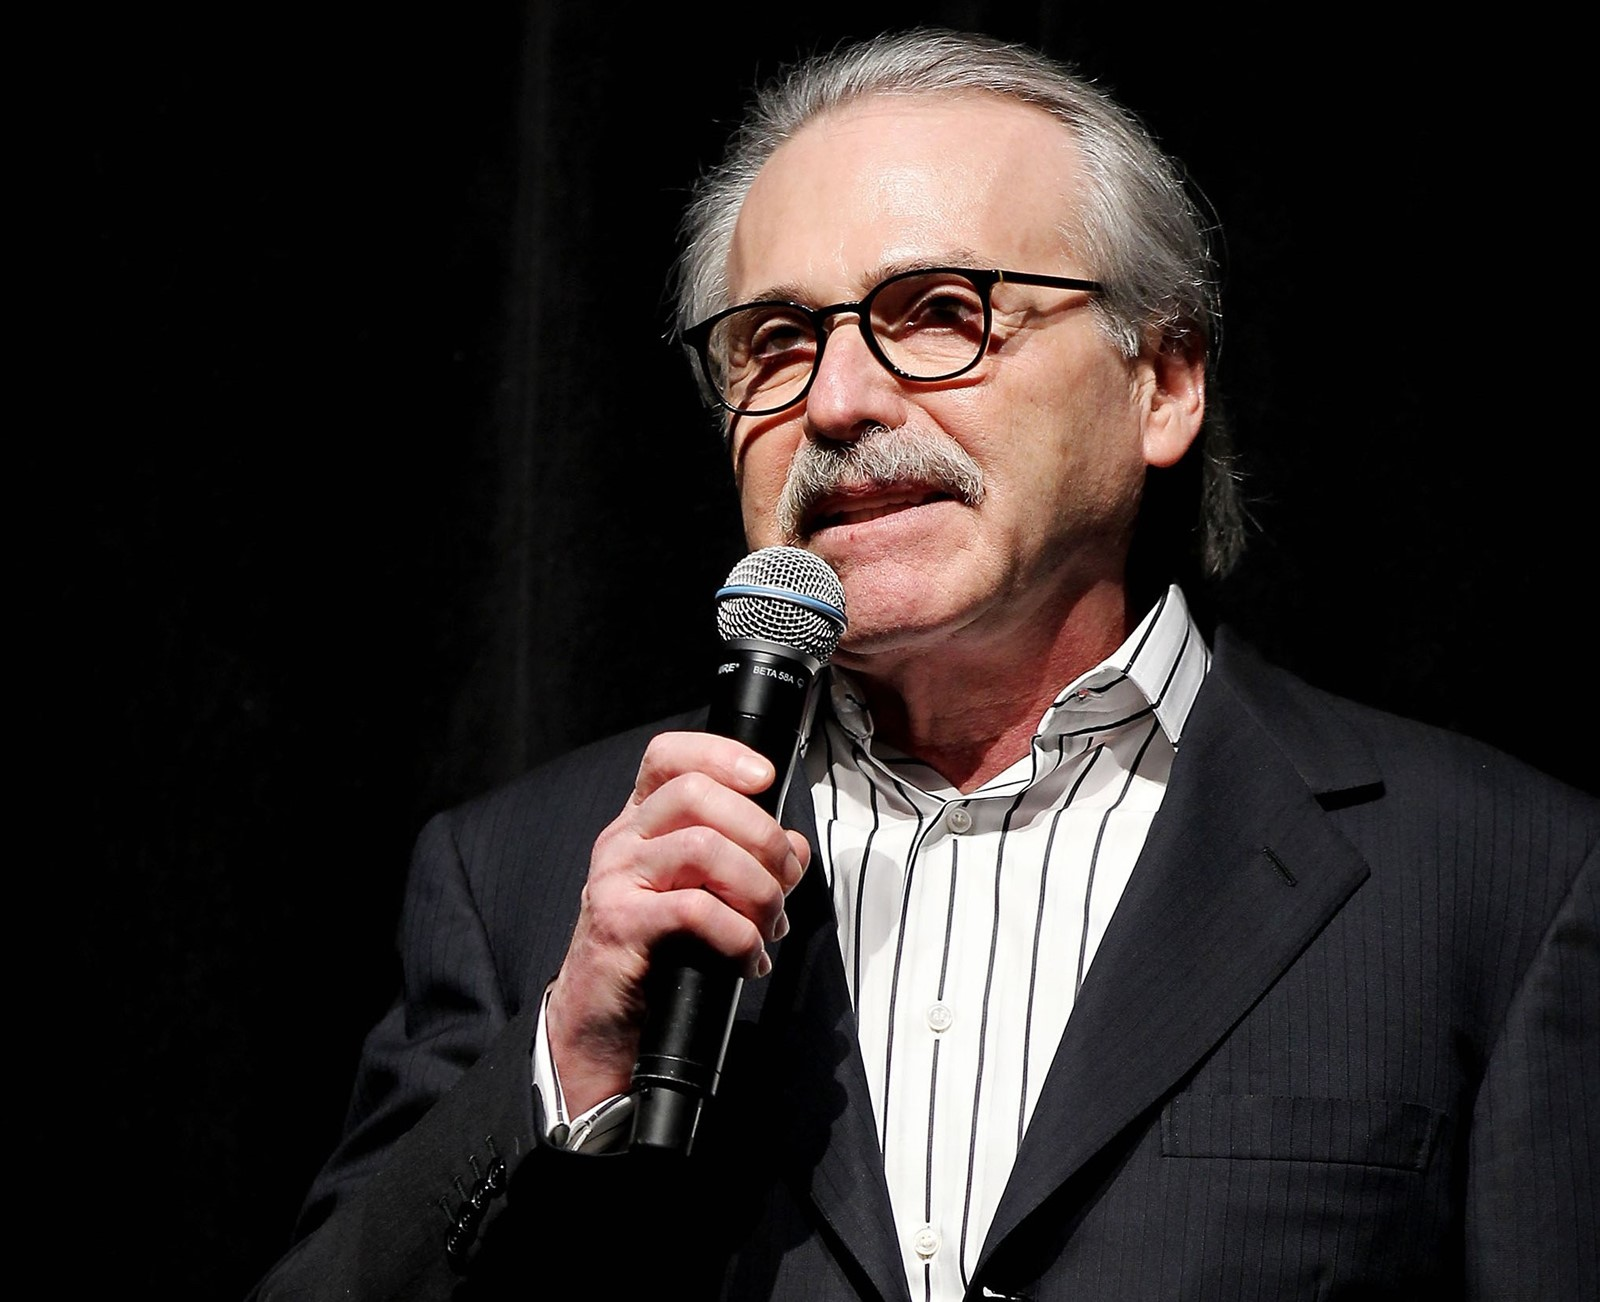 Media mogul David Pecker, who helped kill a harmful Trump story, is now aiding investigators. — Photograph: Marion Curtis.